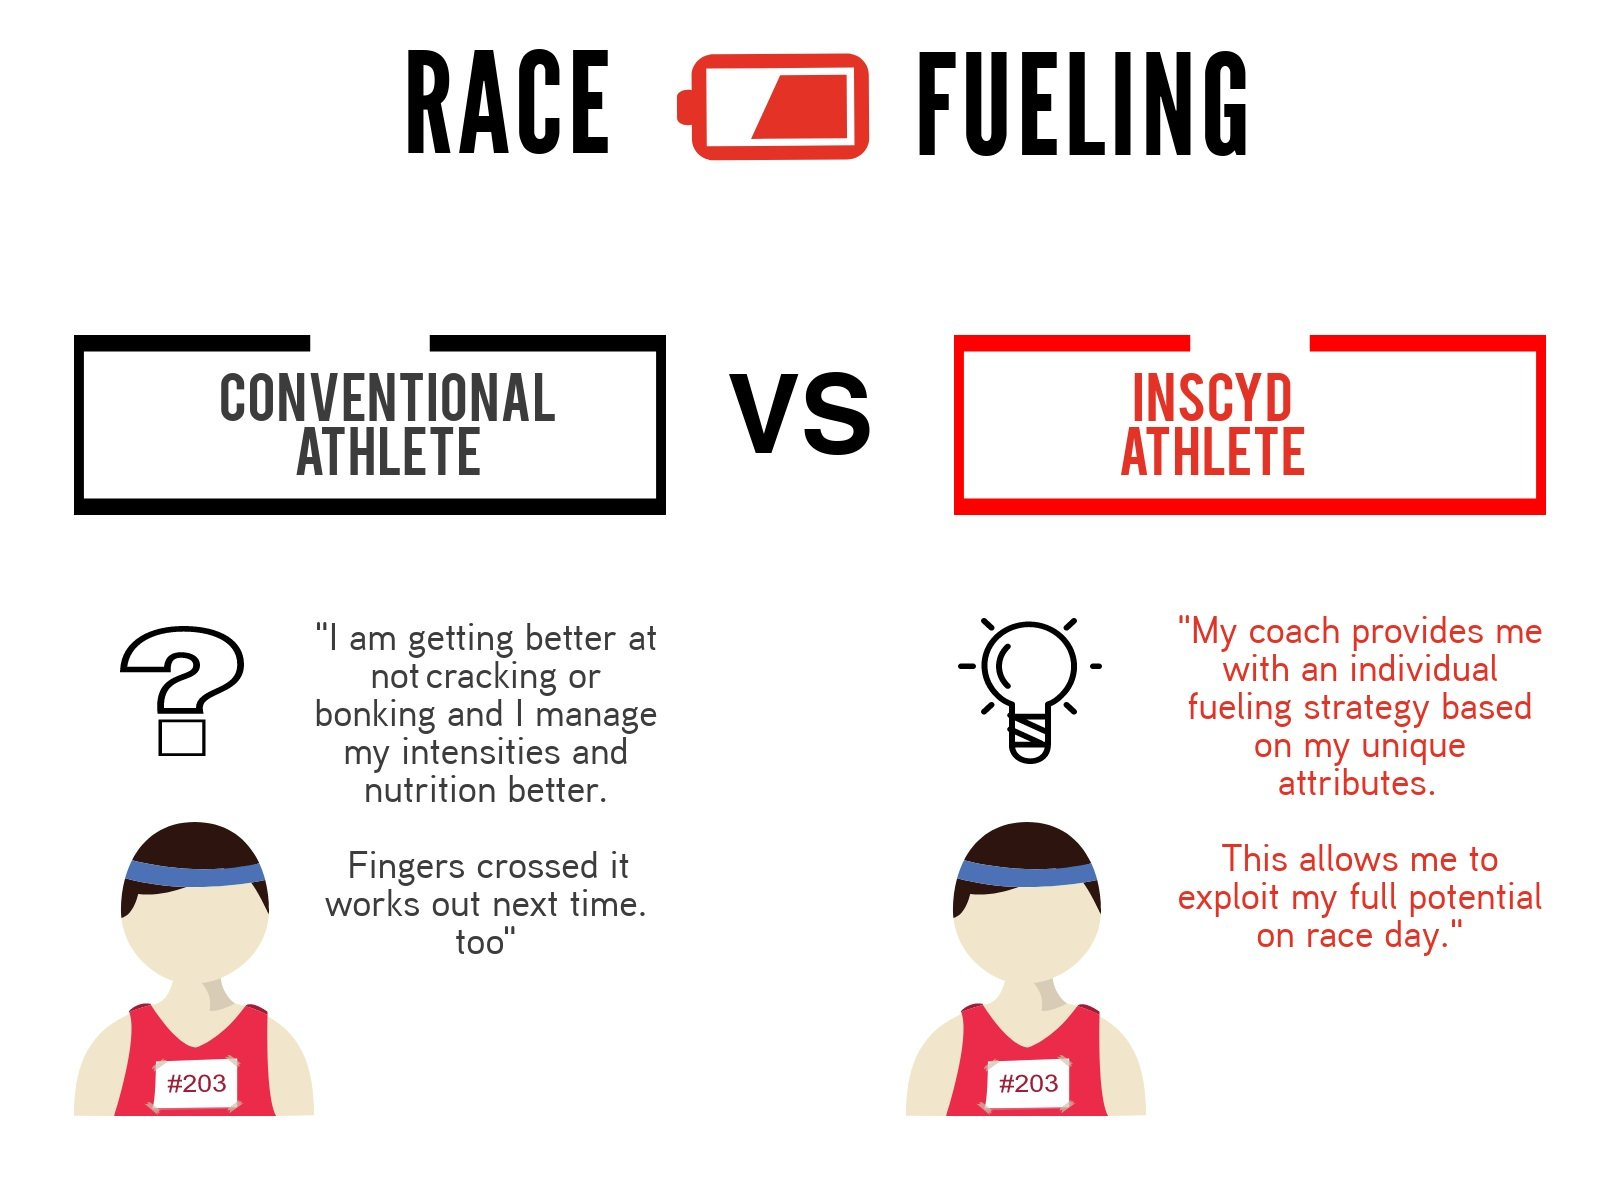 Race Fuelling - Critical Power testing with INSCYD